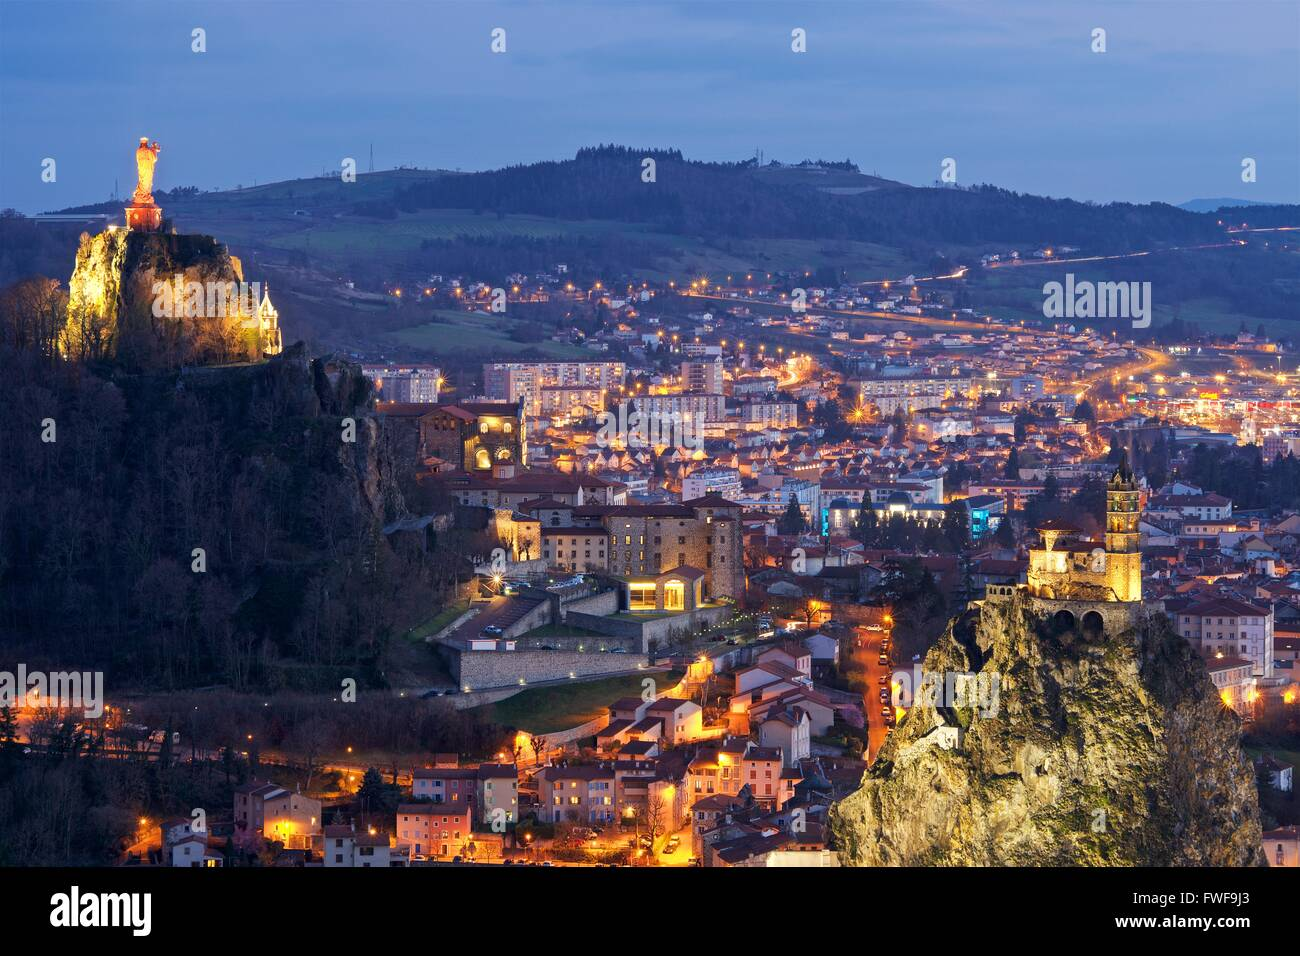 A colour image taken at dusk of the town of le puy-en-velay in france - Stock Image